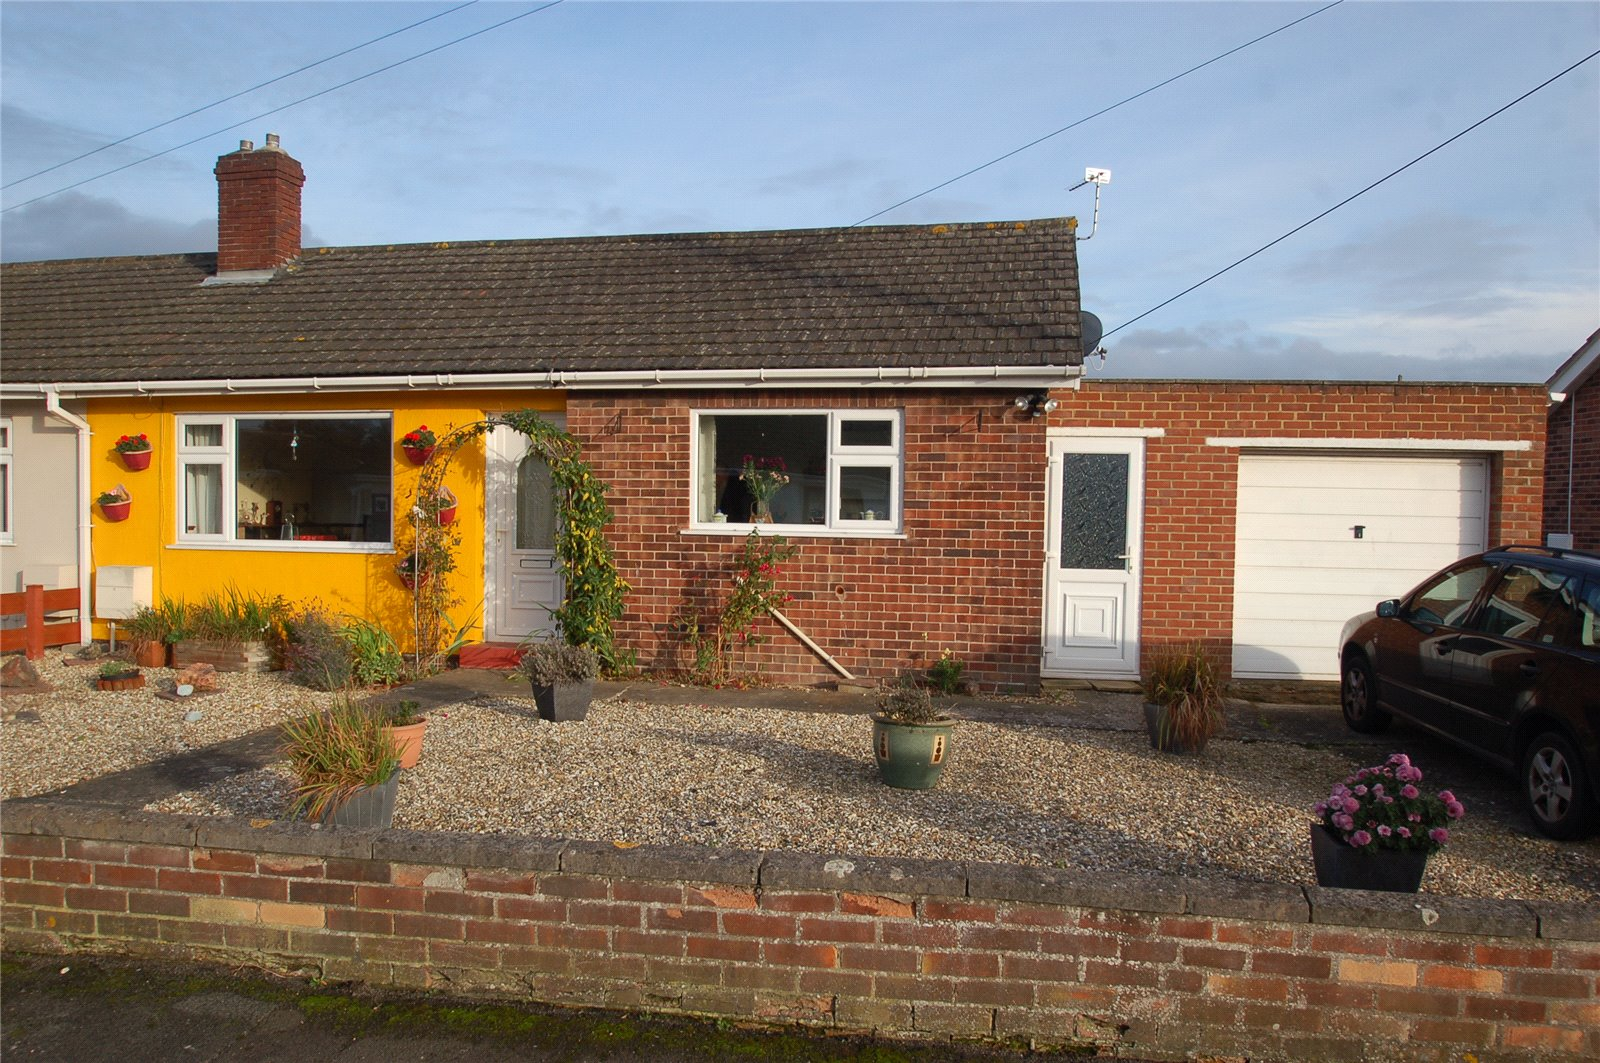 2 Bedrooms Bungalow for sale in Sussex Avenue Bridgwater Somerset TA6